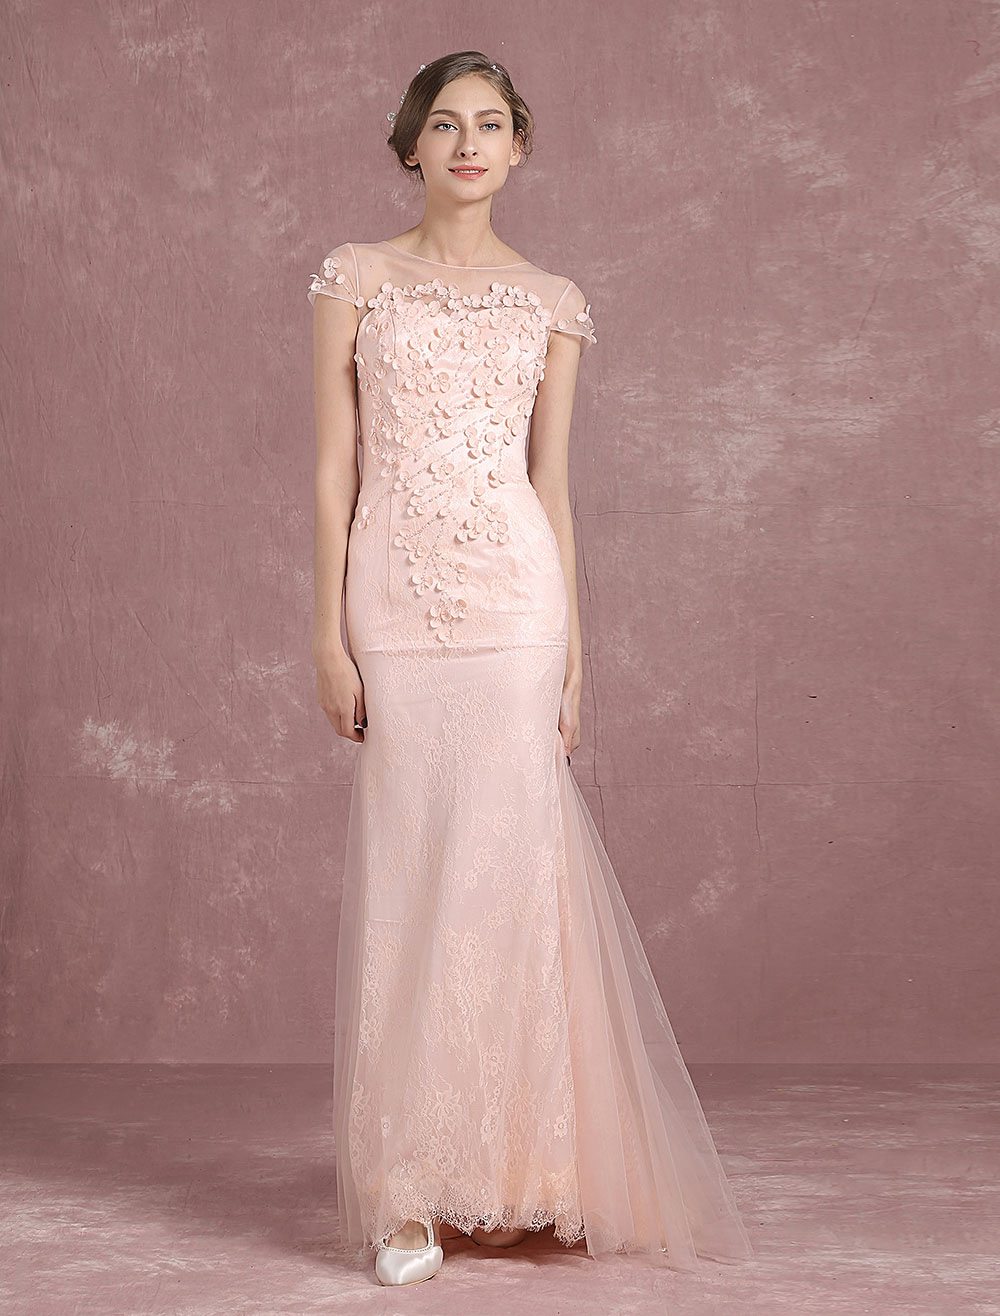 Buy Summer Wedding Dresses 2018 Blush Boho Tulle Mermaid Bridal Gown Illusion Neckline Applique Button Sleeveless Sweep Train Bridal Dress for $221.39 in Milanoo store